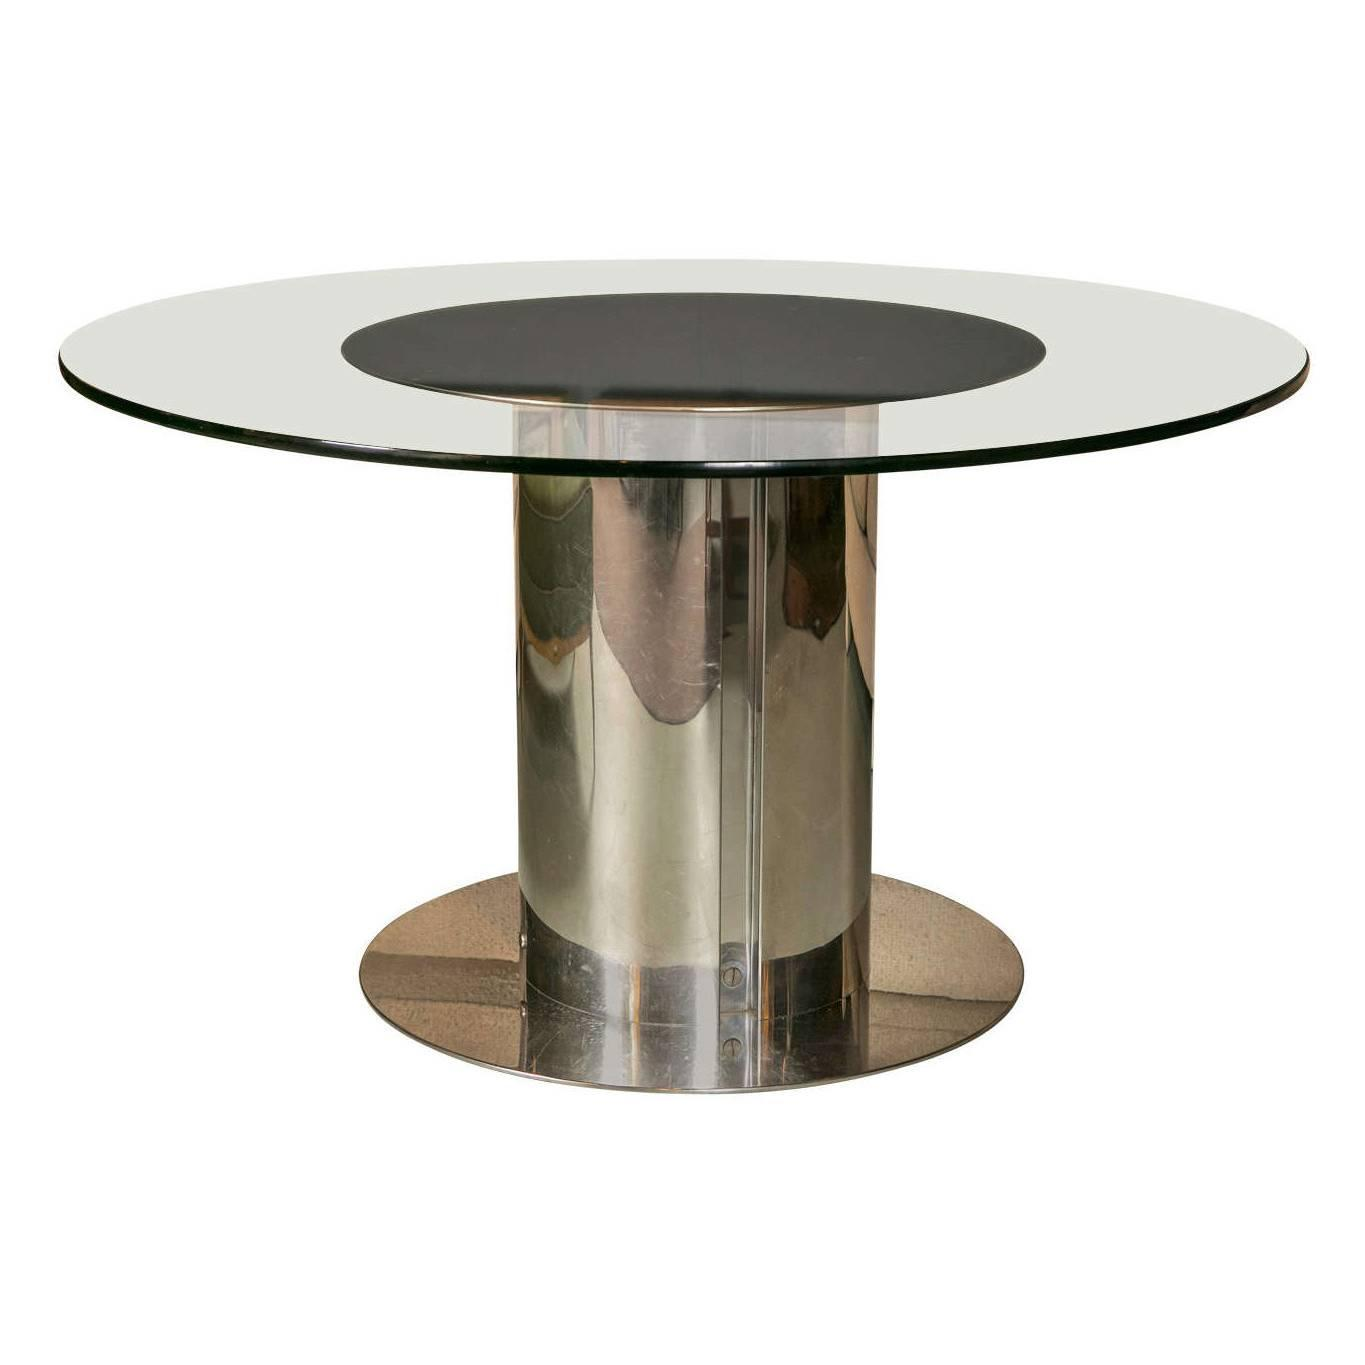 Glass dining tables expandable glass dining table buy for Round glass dining table